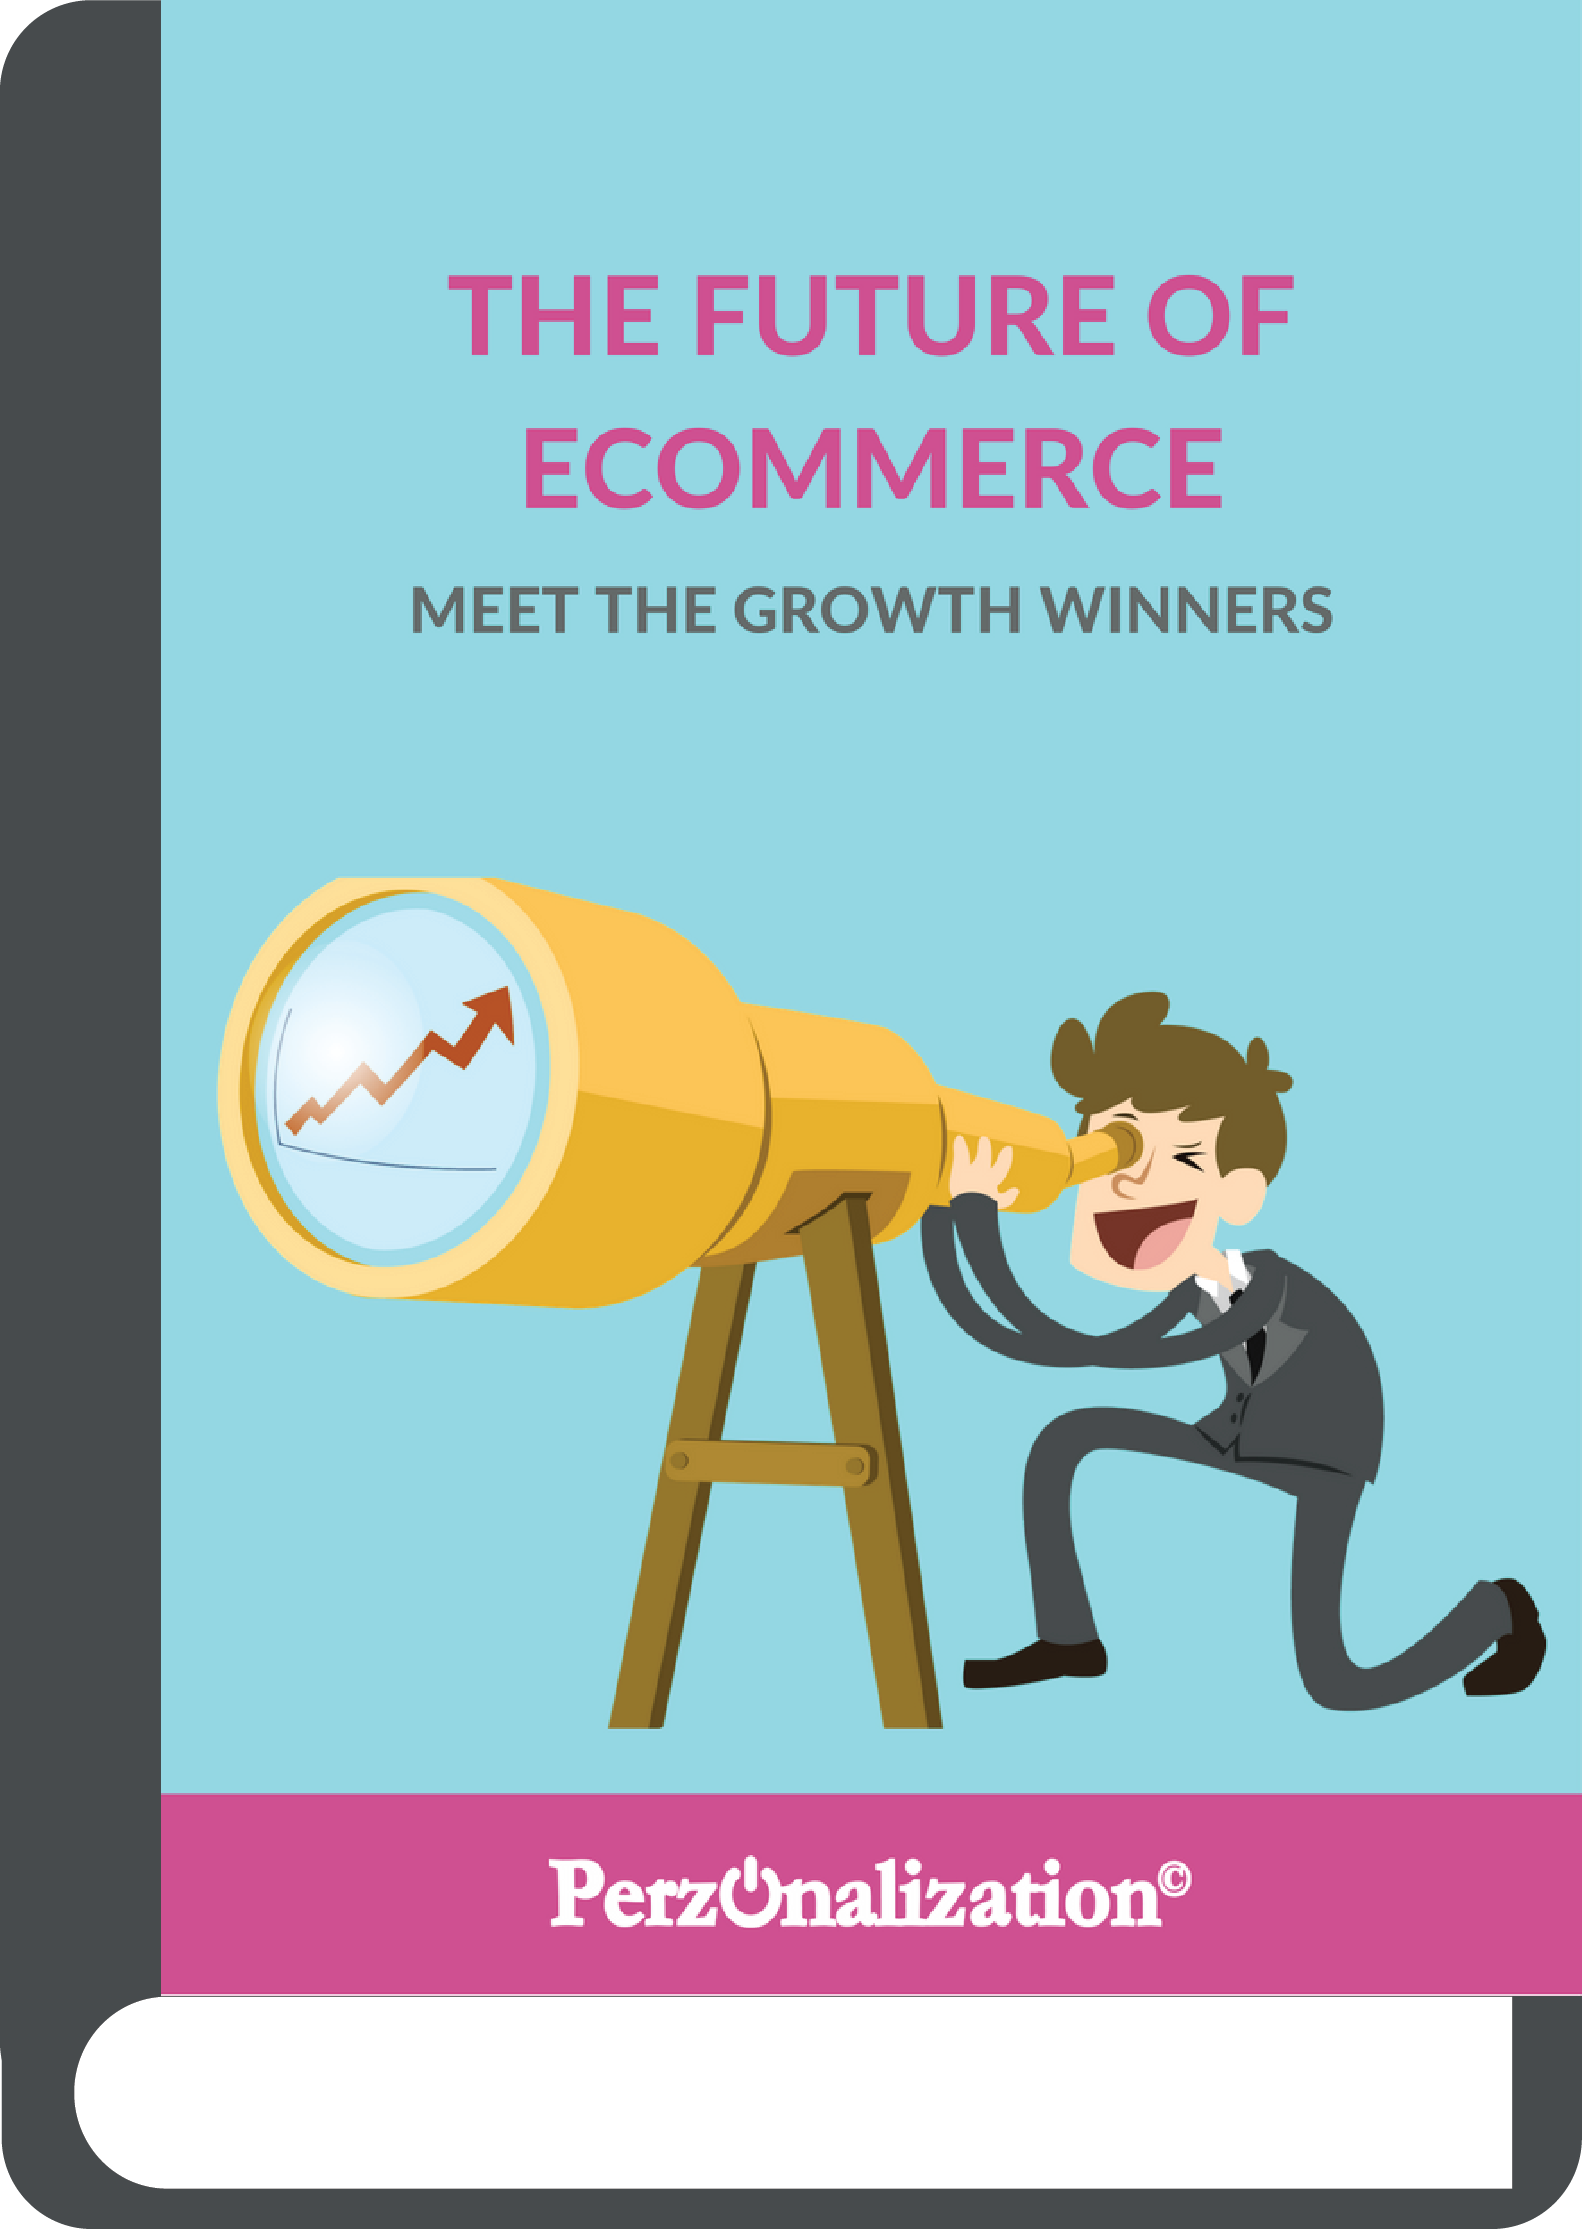 eCommerce is one of the most dynamic business models. Changes in social media and mobile drives radical changes in the consumer behaviour. In order to predict in which areas eCommerce will grow, we take a look at the high growth areas of today including categories and countries driving the growth.